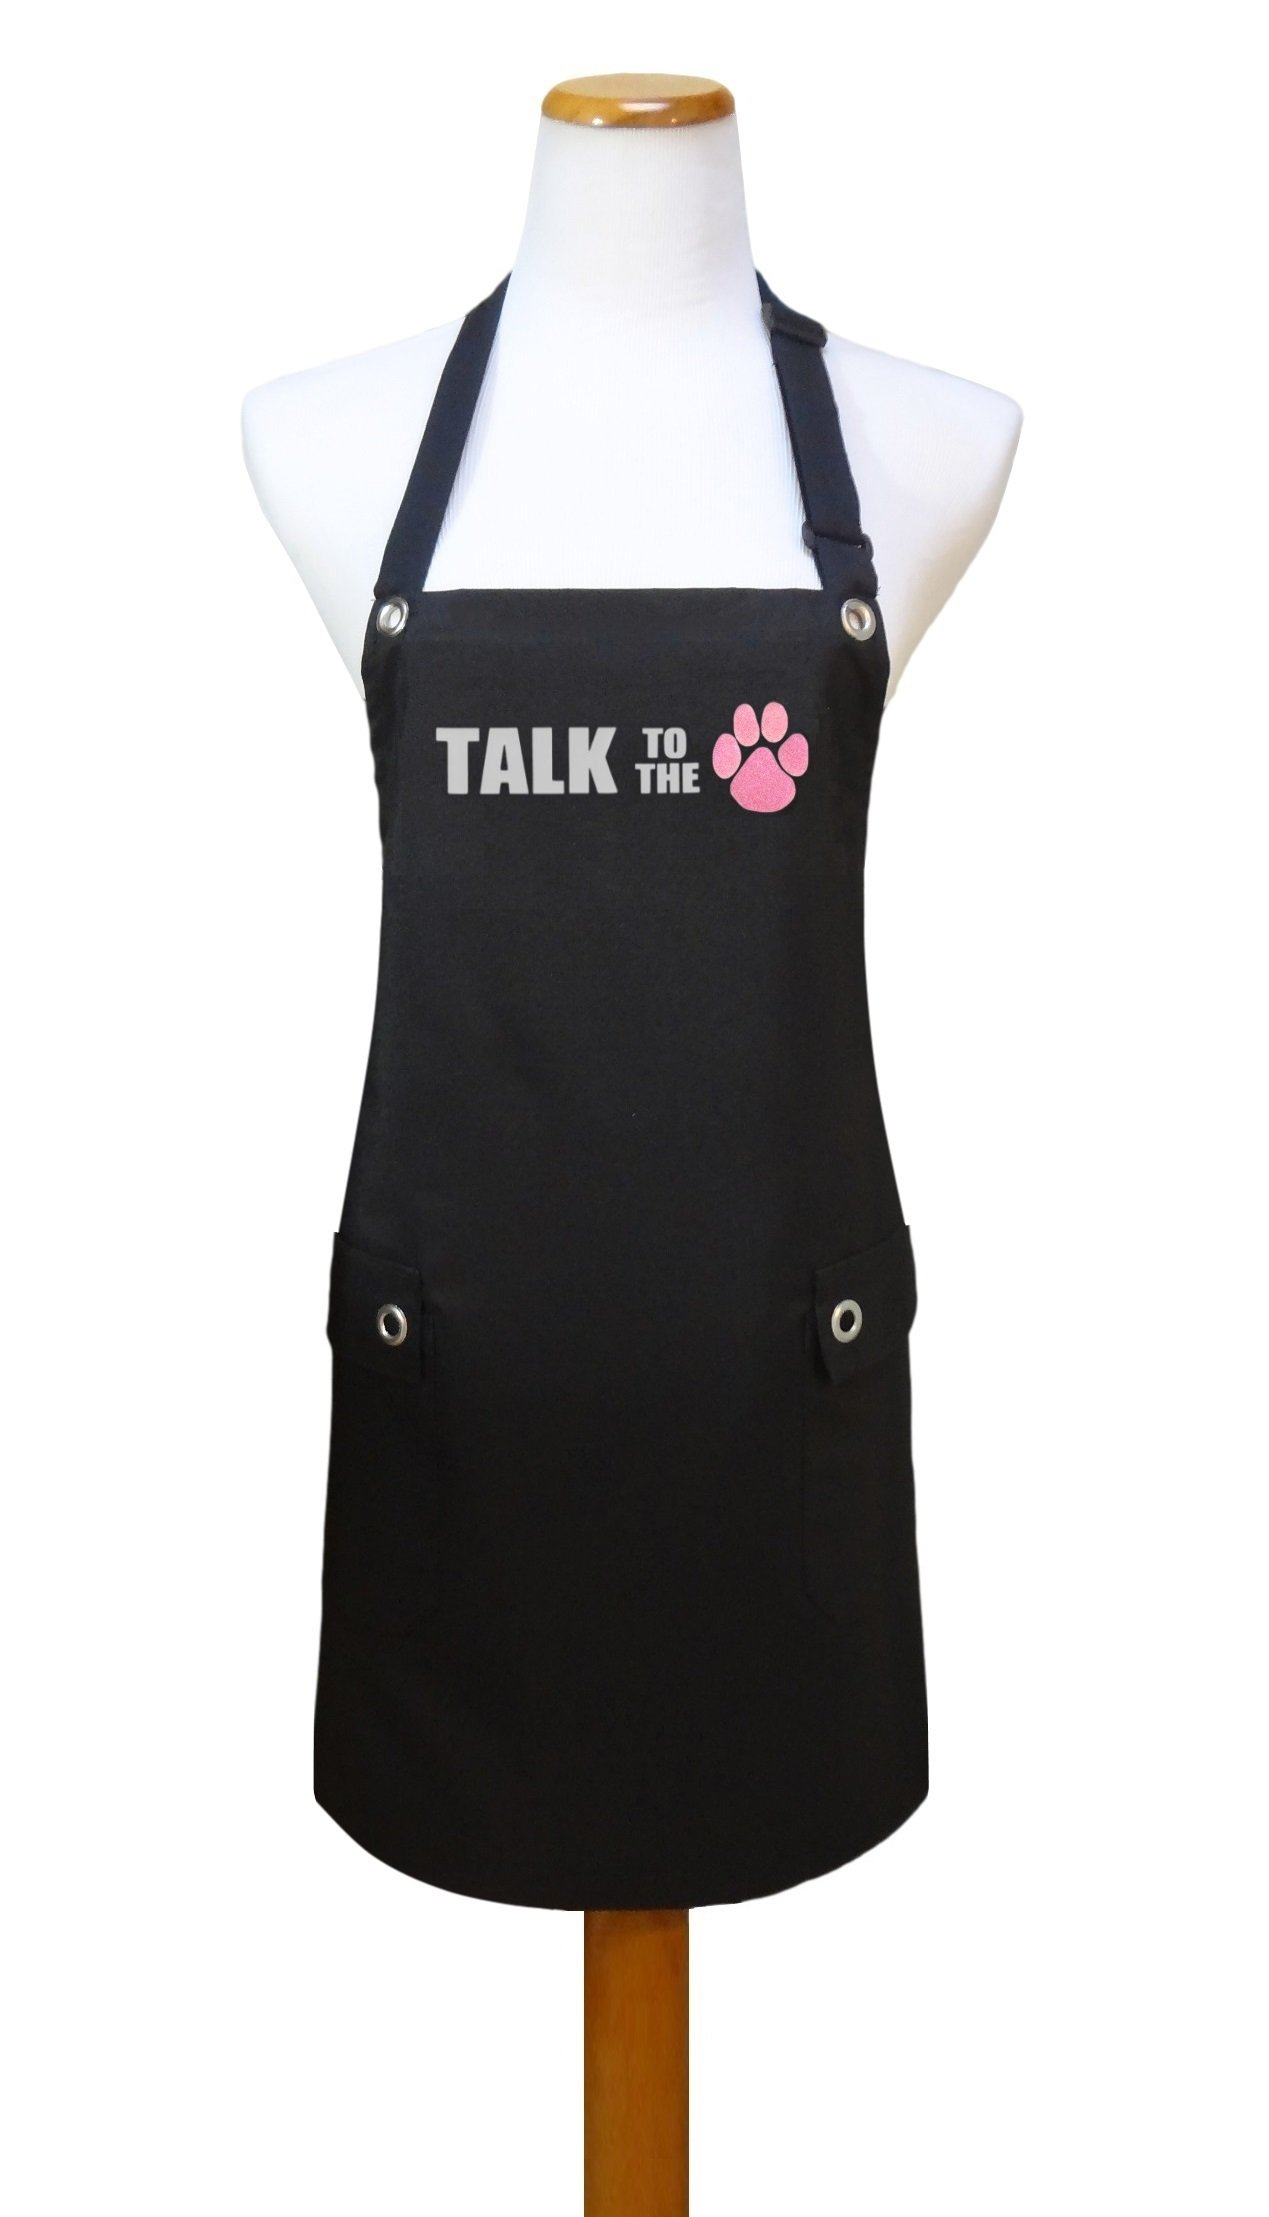 Trendy Salon Aprons Waterproof Dog Groomers Grooming Pet Salon Apron, Talk to the Paw (Pink, Talk to the (paw print))